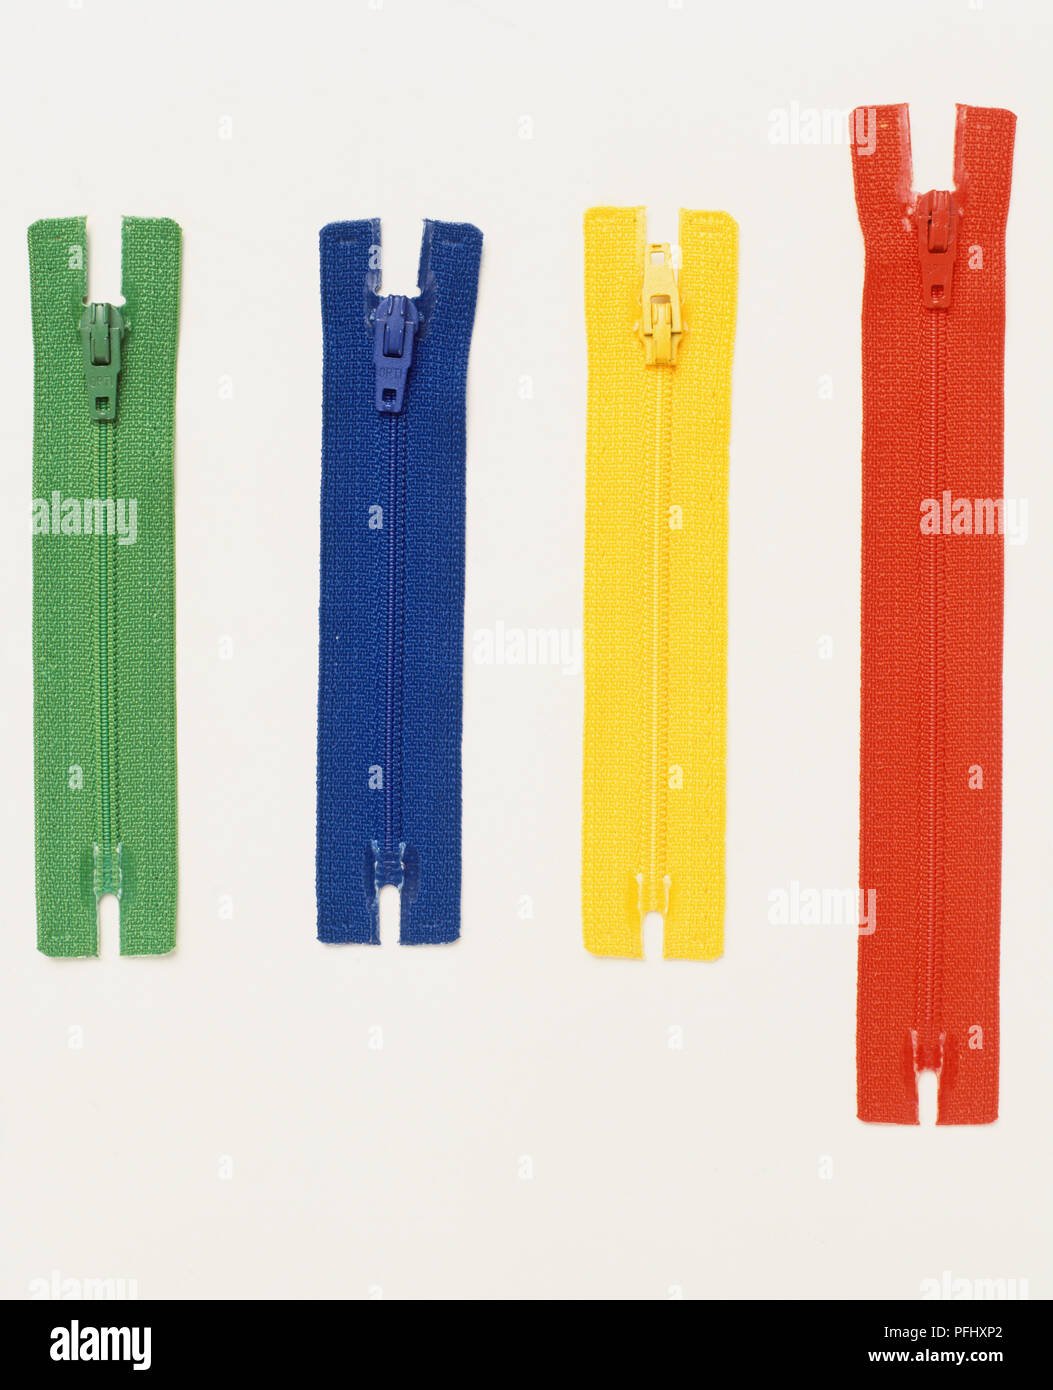 Red, yellow, green and blue zippers, close up. - Stock Image